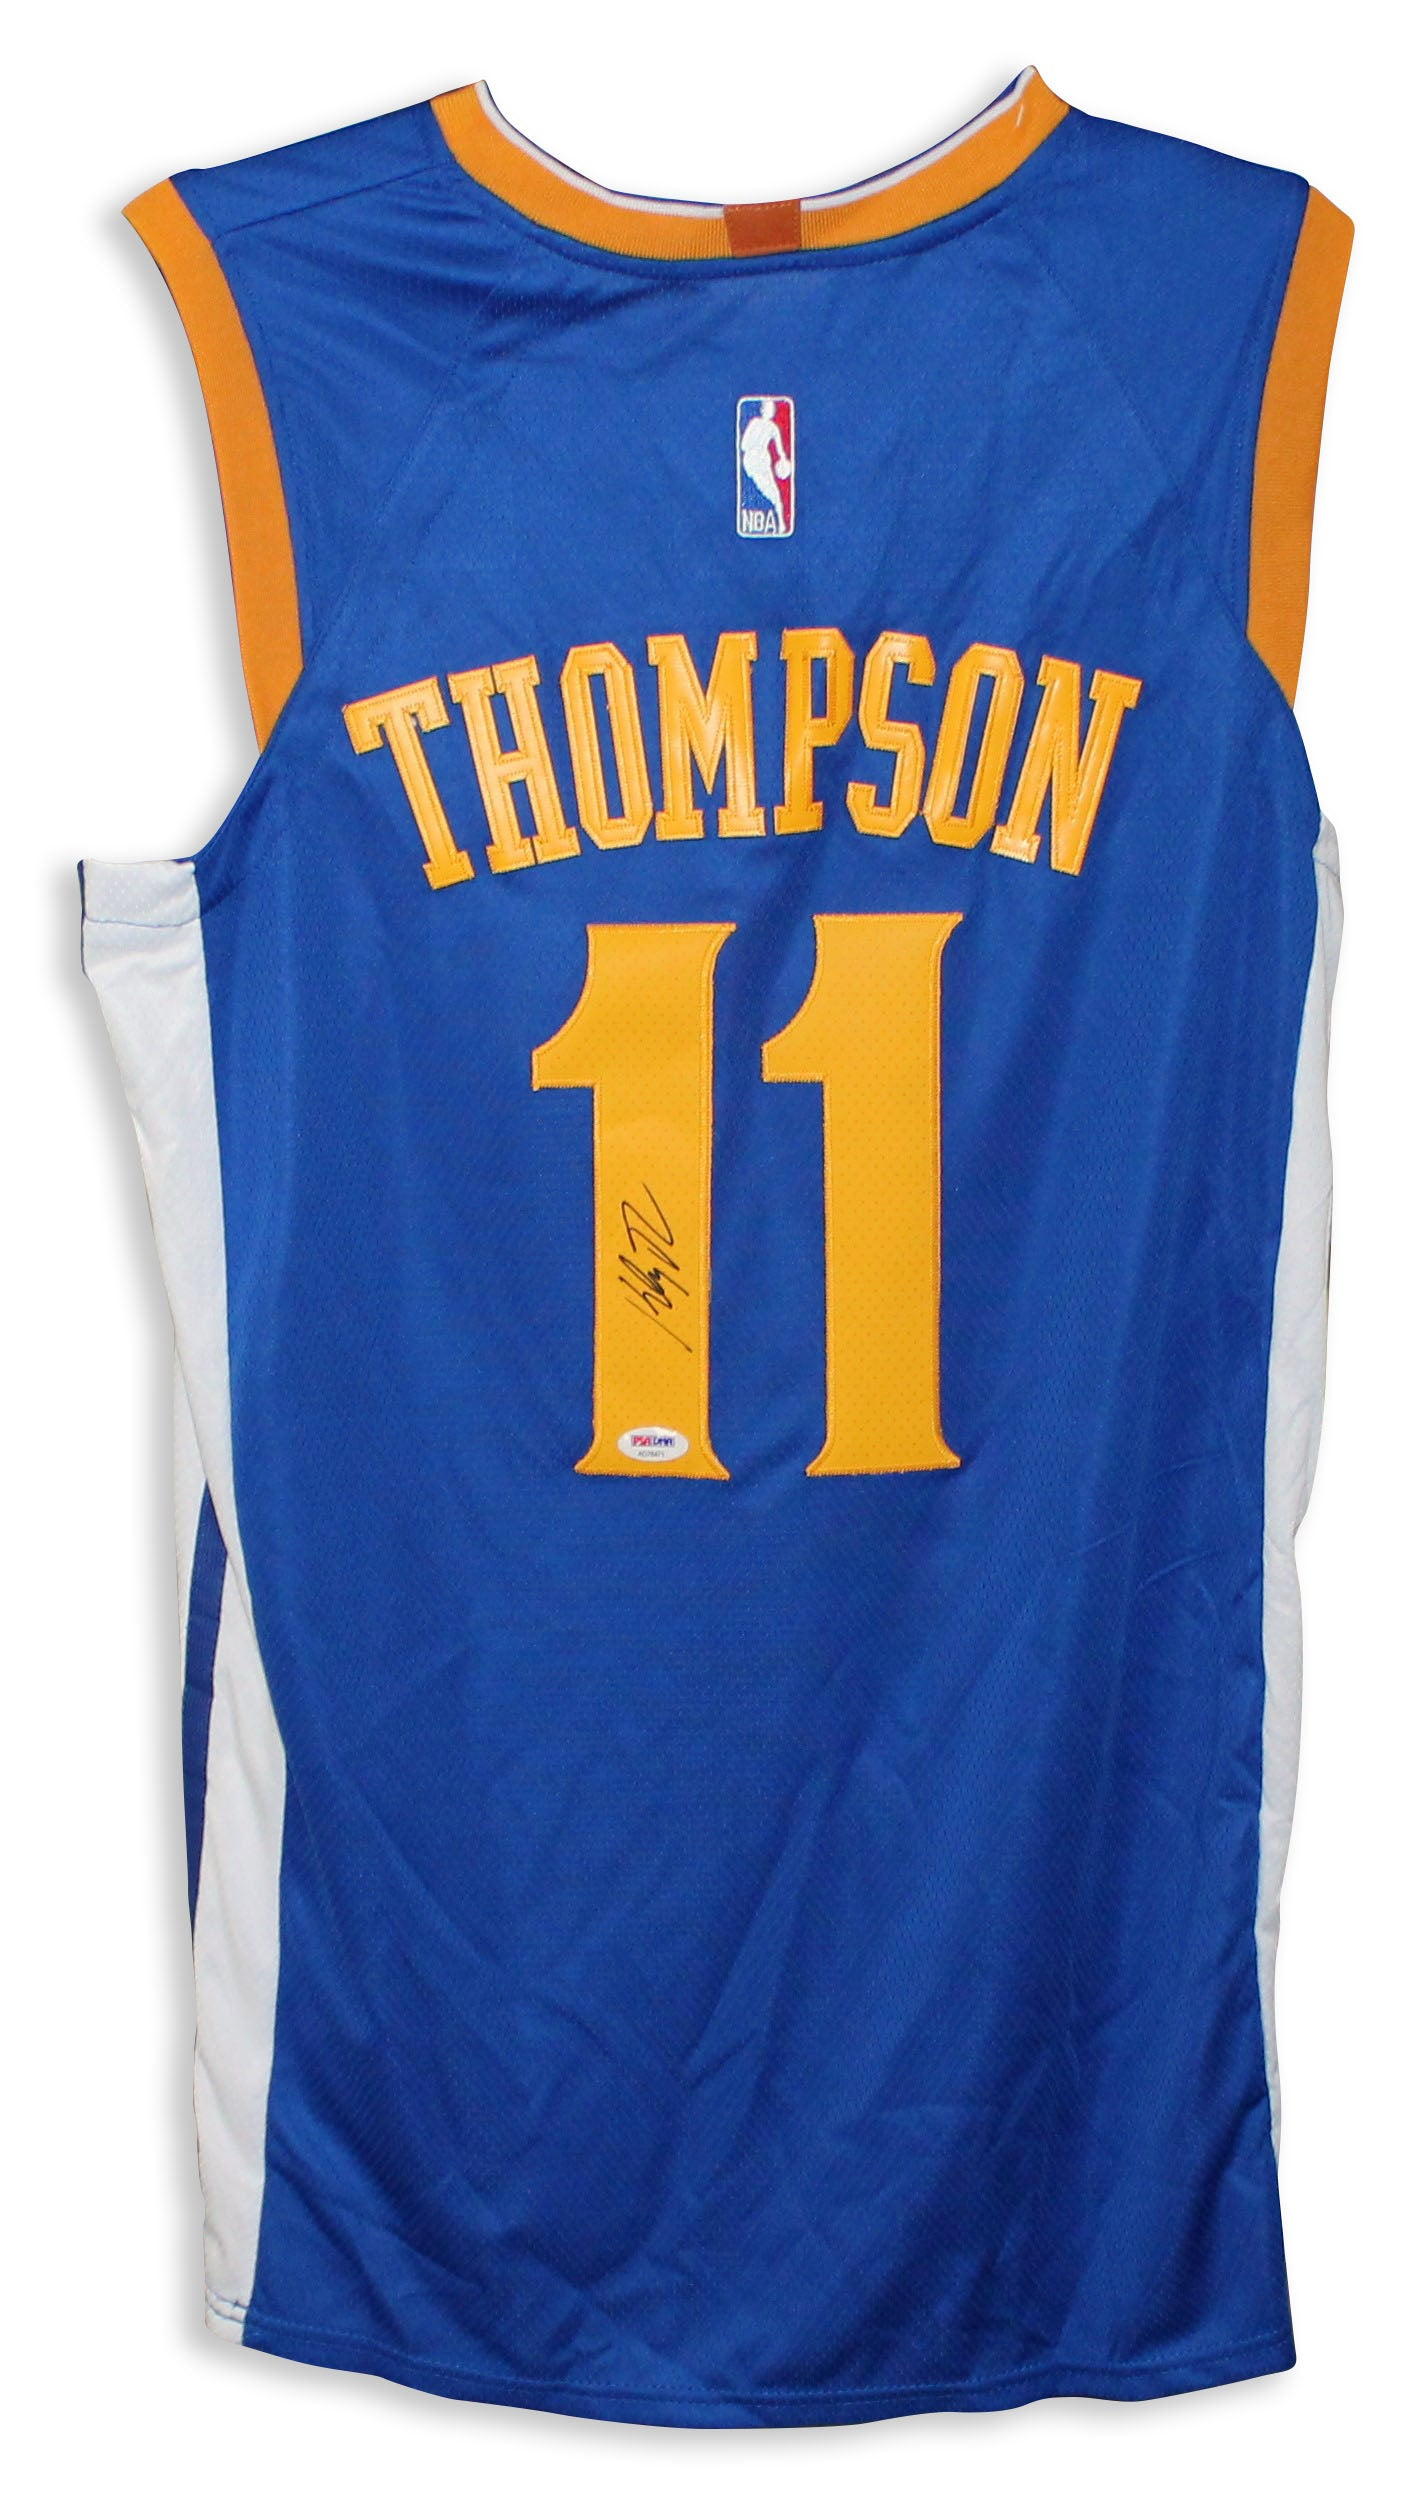 Klay Thompson Golden State Warriors Autographed Blue Jersey dff8a1046